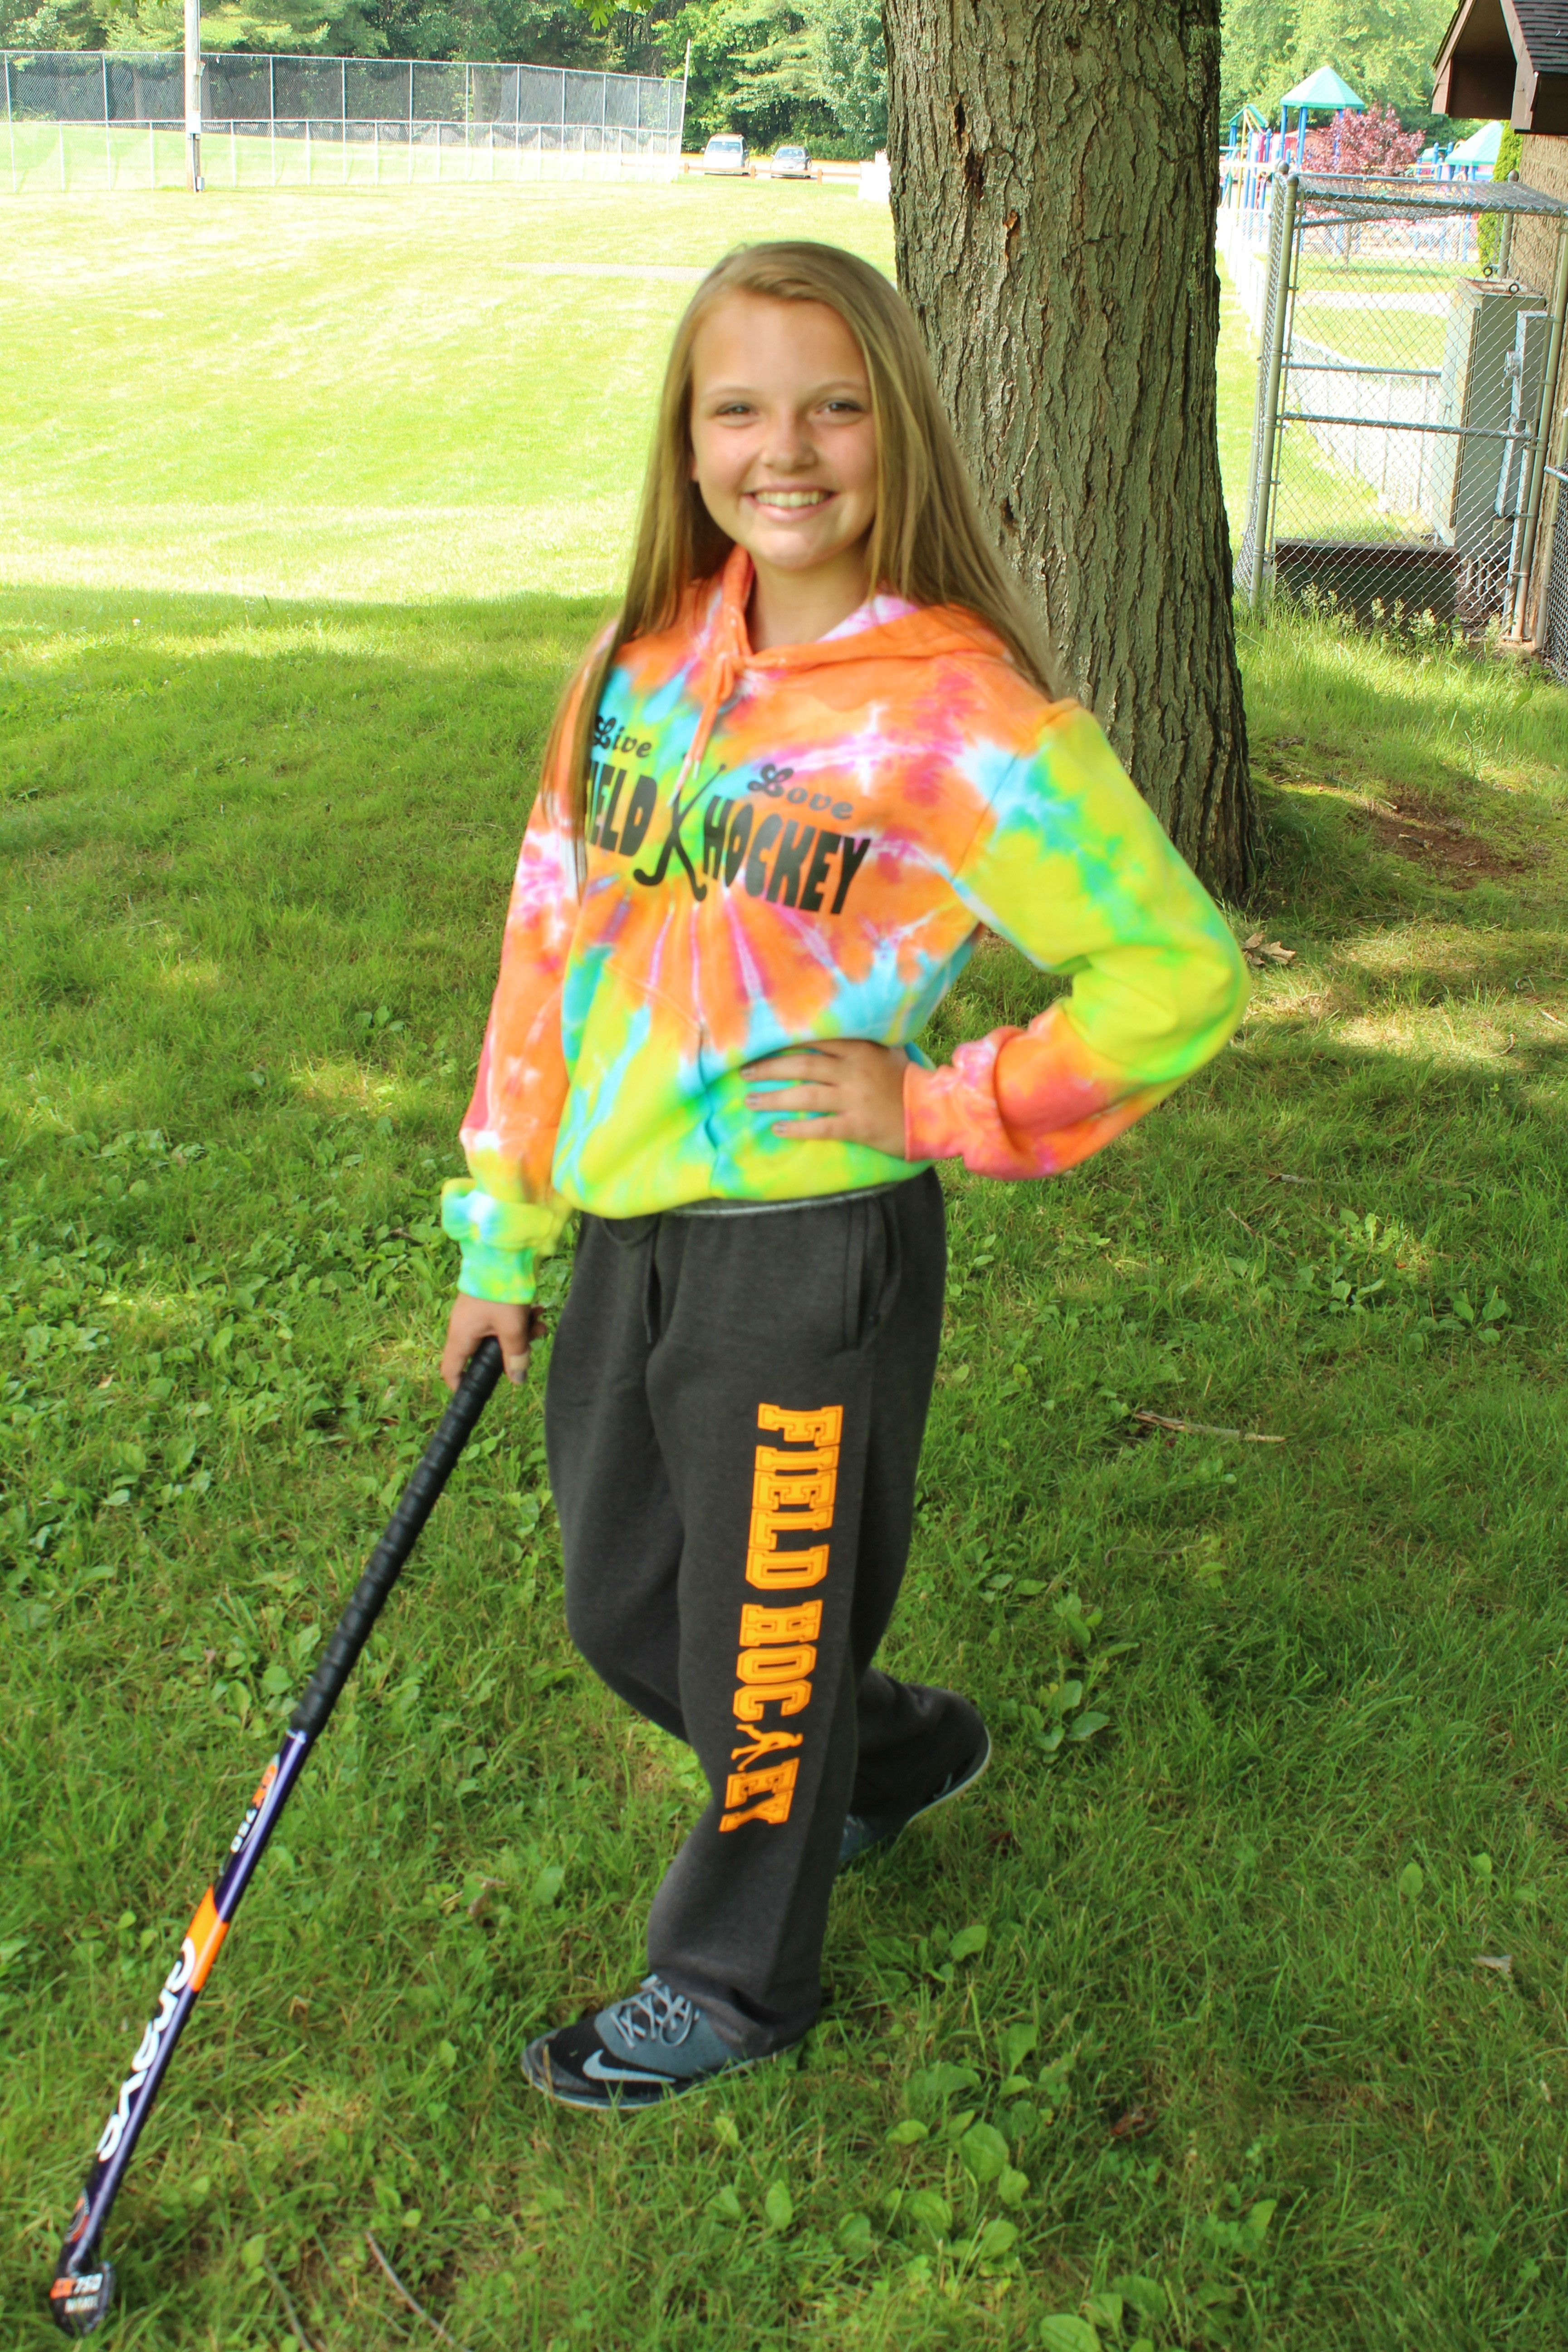 One Of Our Field Hockey Players Sporting Our Sweatpants And Hoodie This Is The Perfect Warm Up Outfit Mix Field Hockey Outfits Hockey Clothes Hockey Outfits